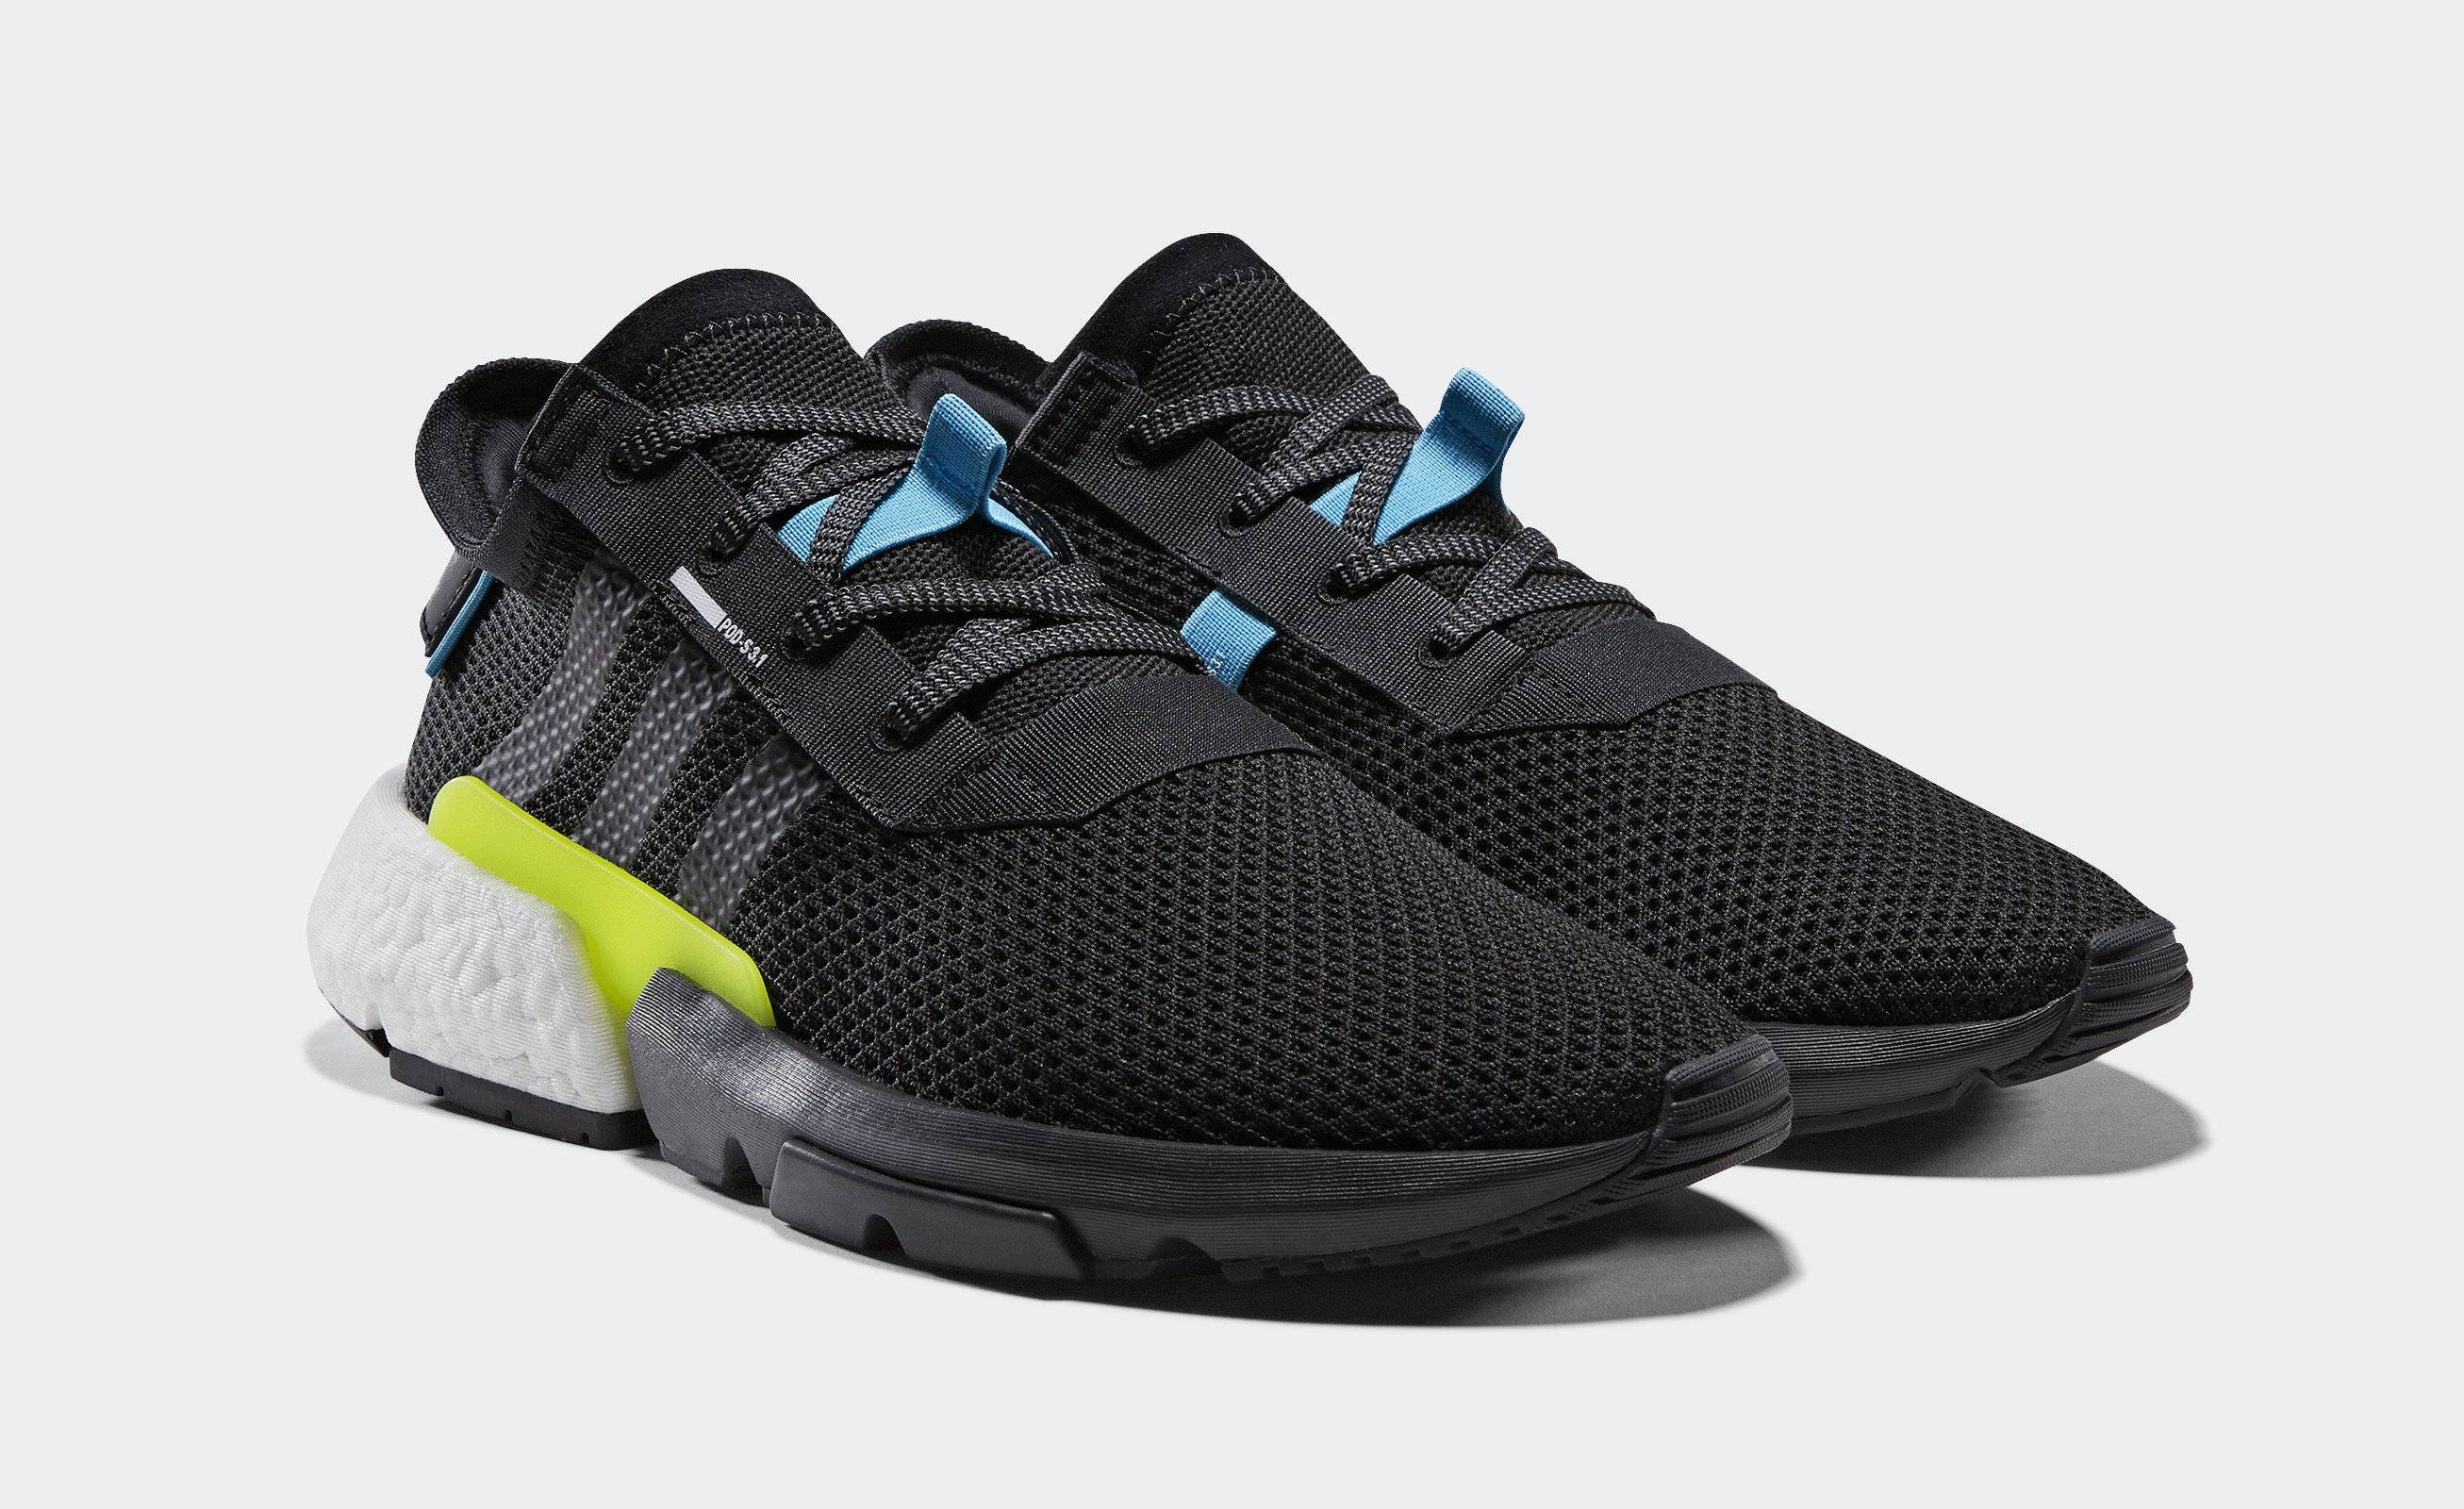 online retailer 6885a 3d70c Adidas Debuts the P.O.D. System